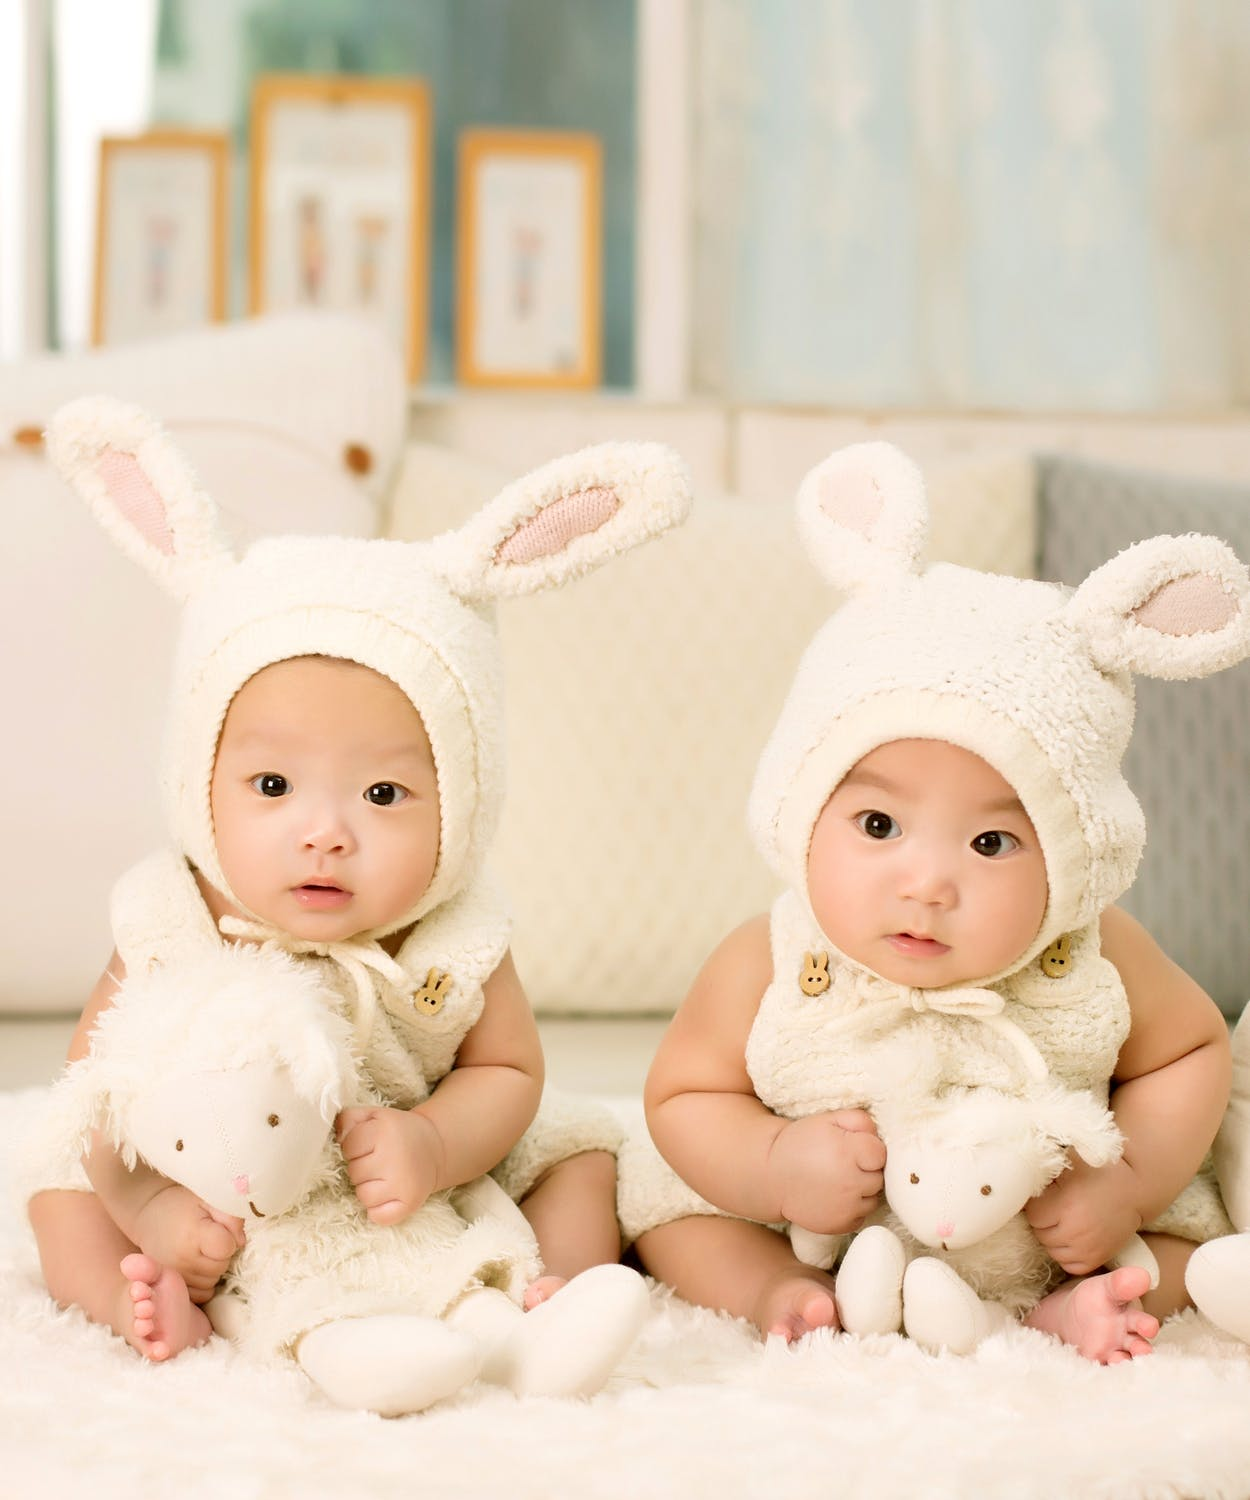 Coupons & discounts for twins